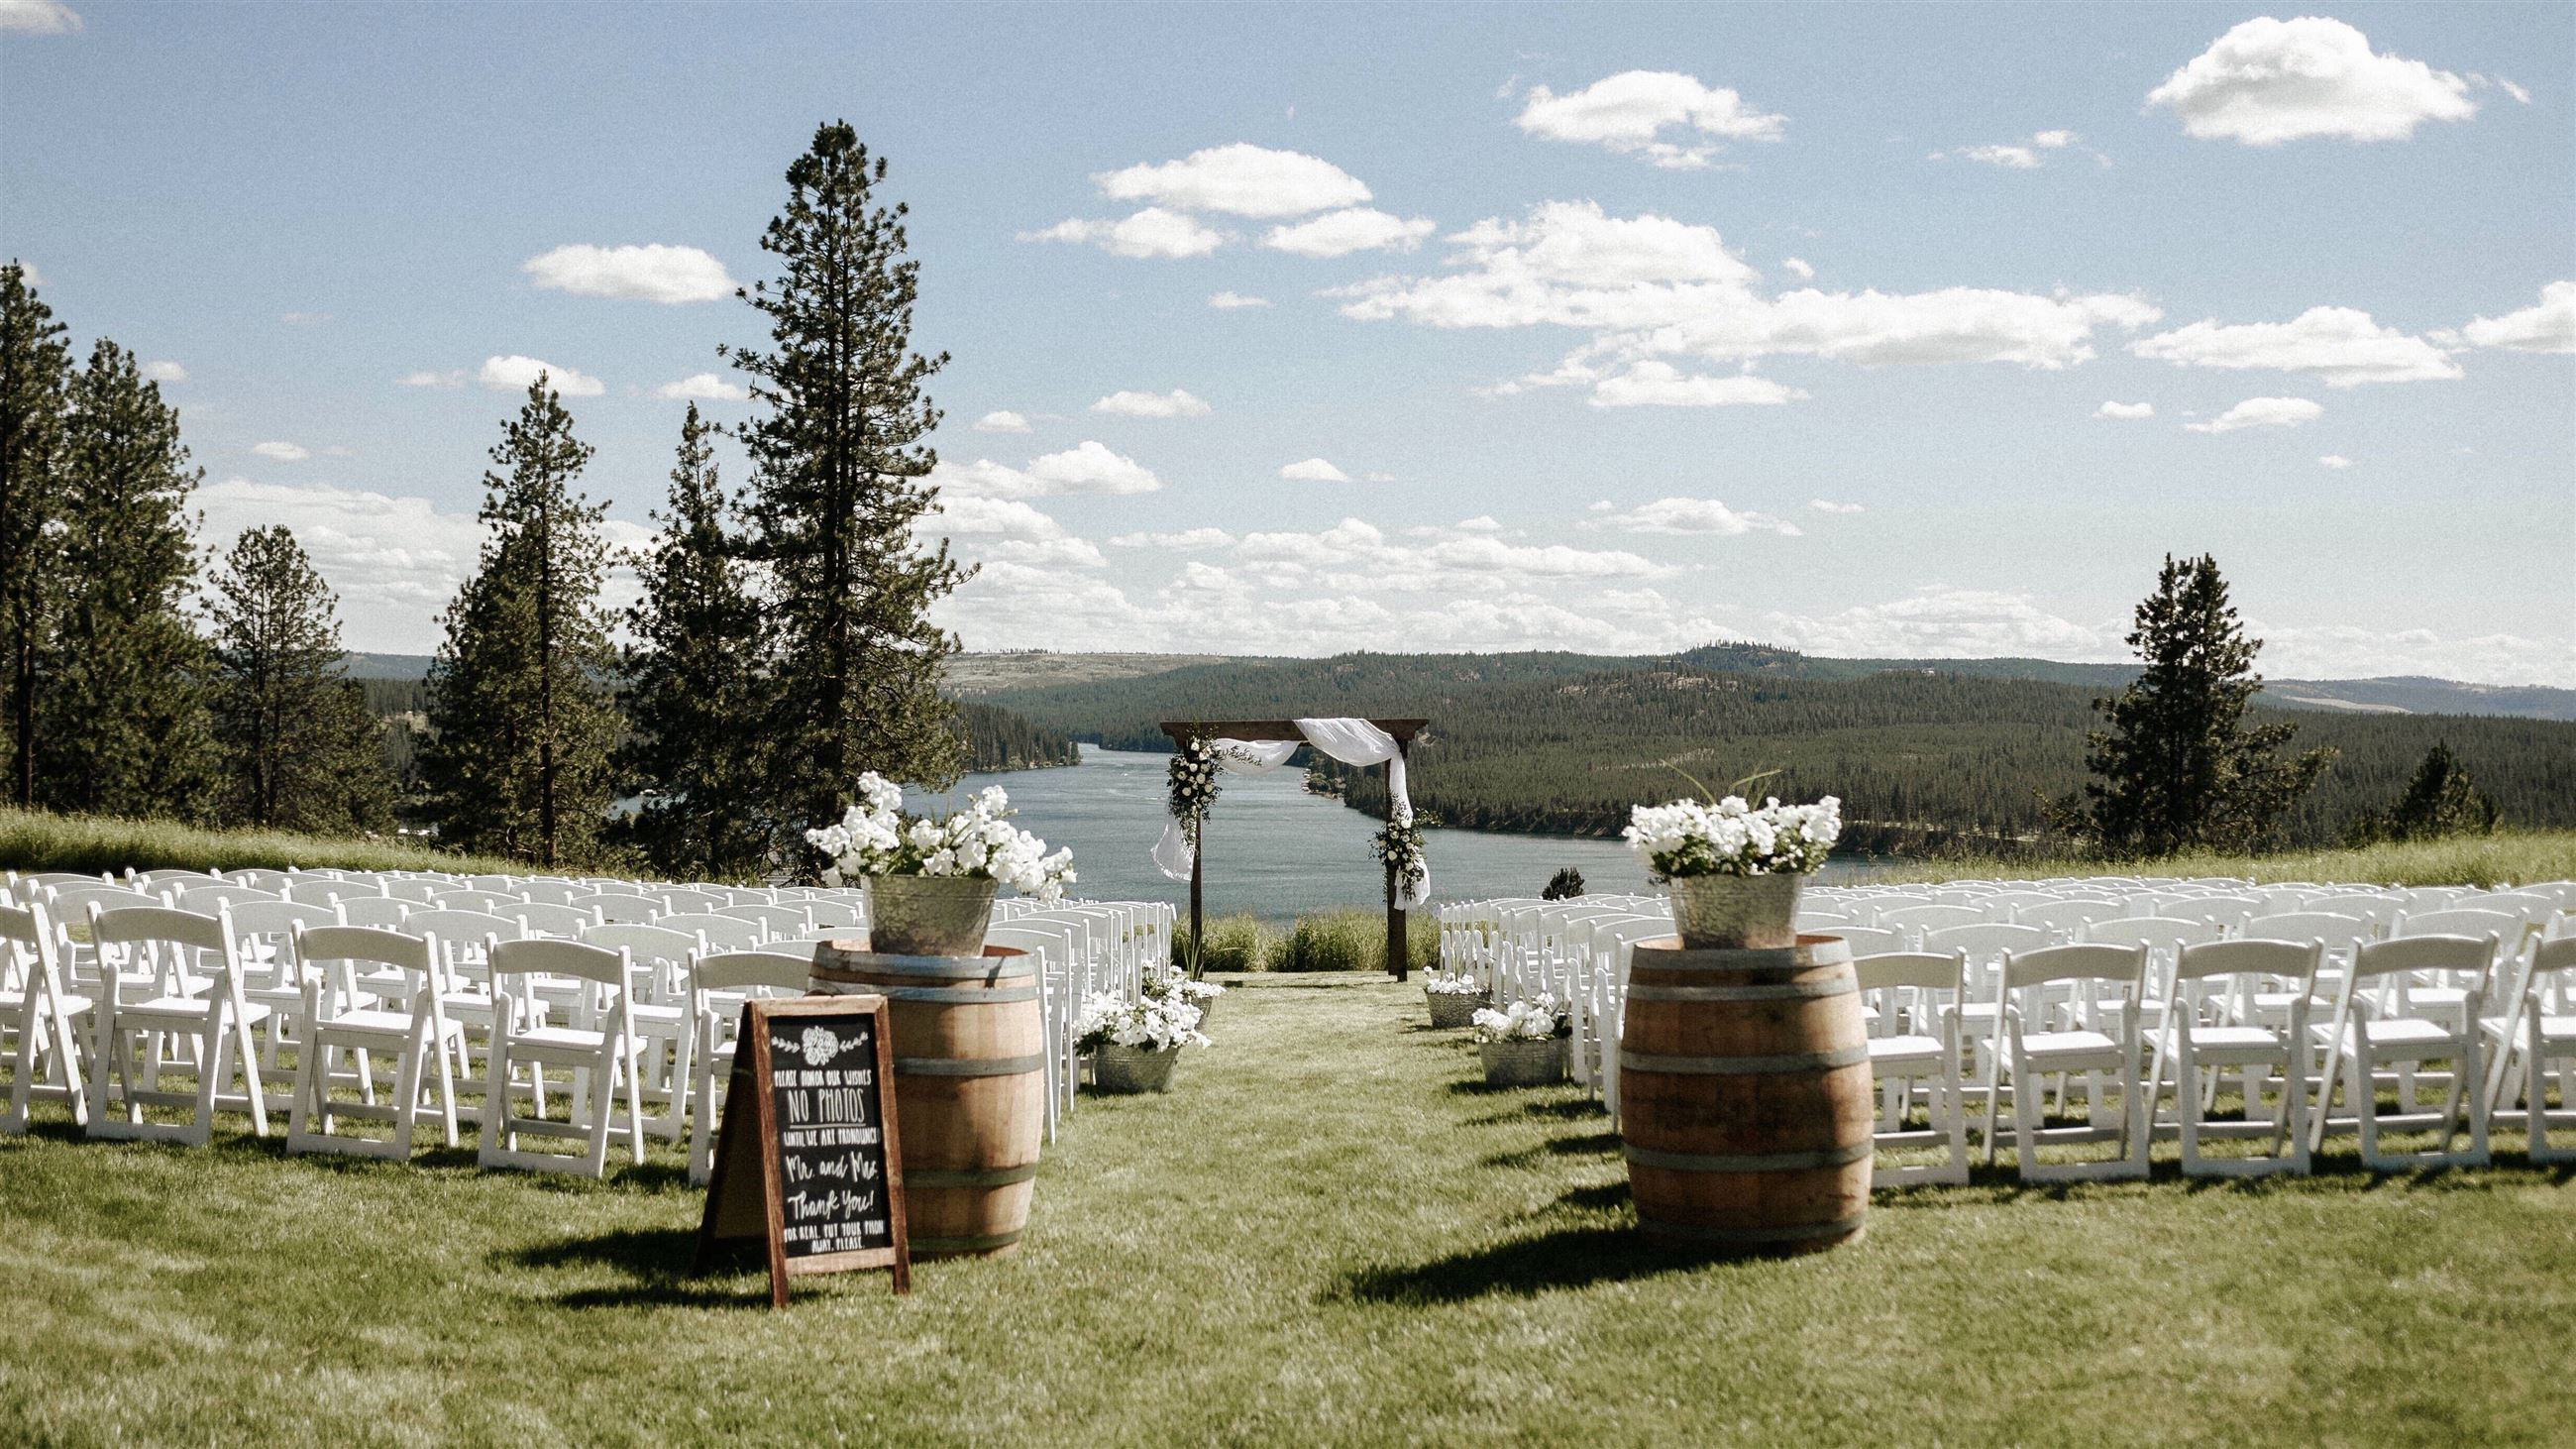 wedding venue overlooking a lake and mountains